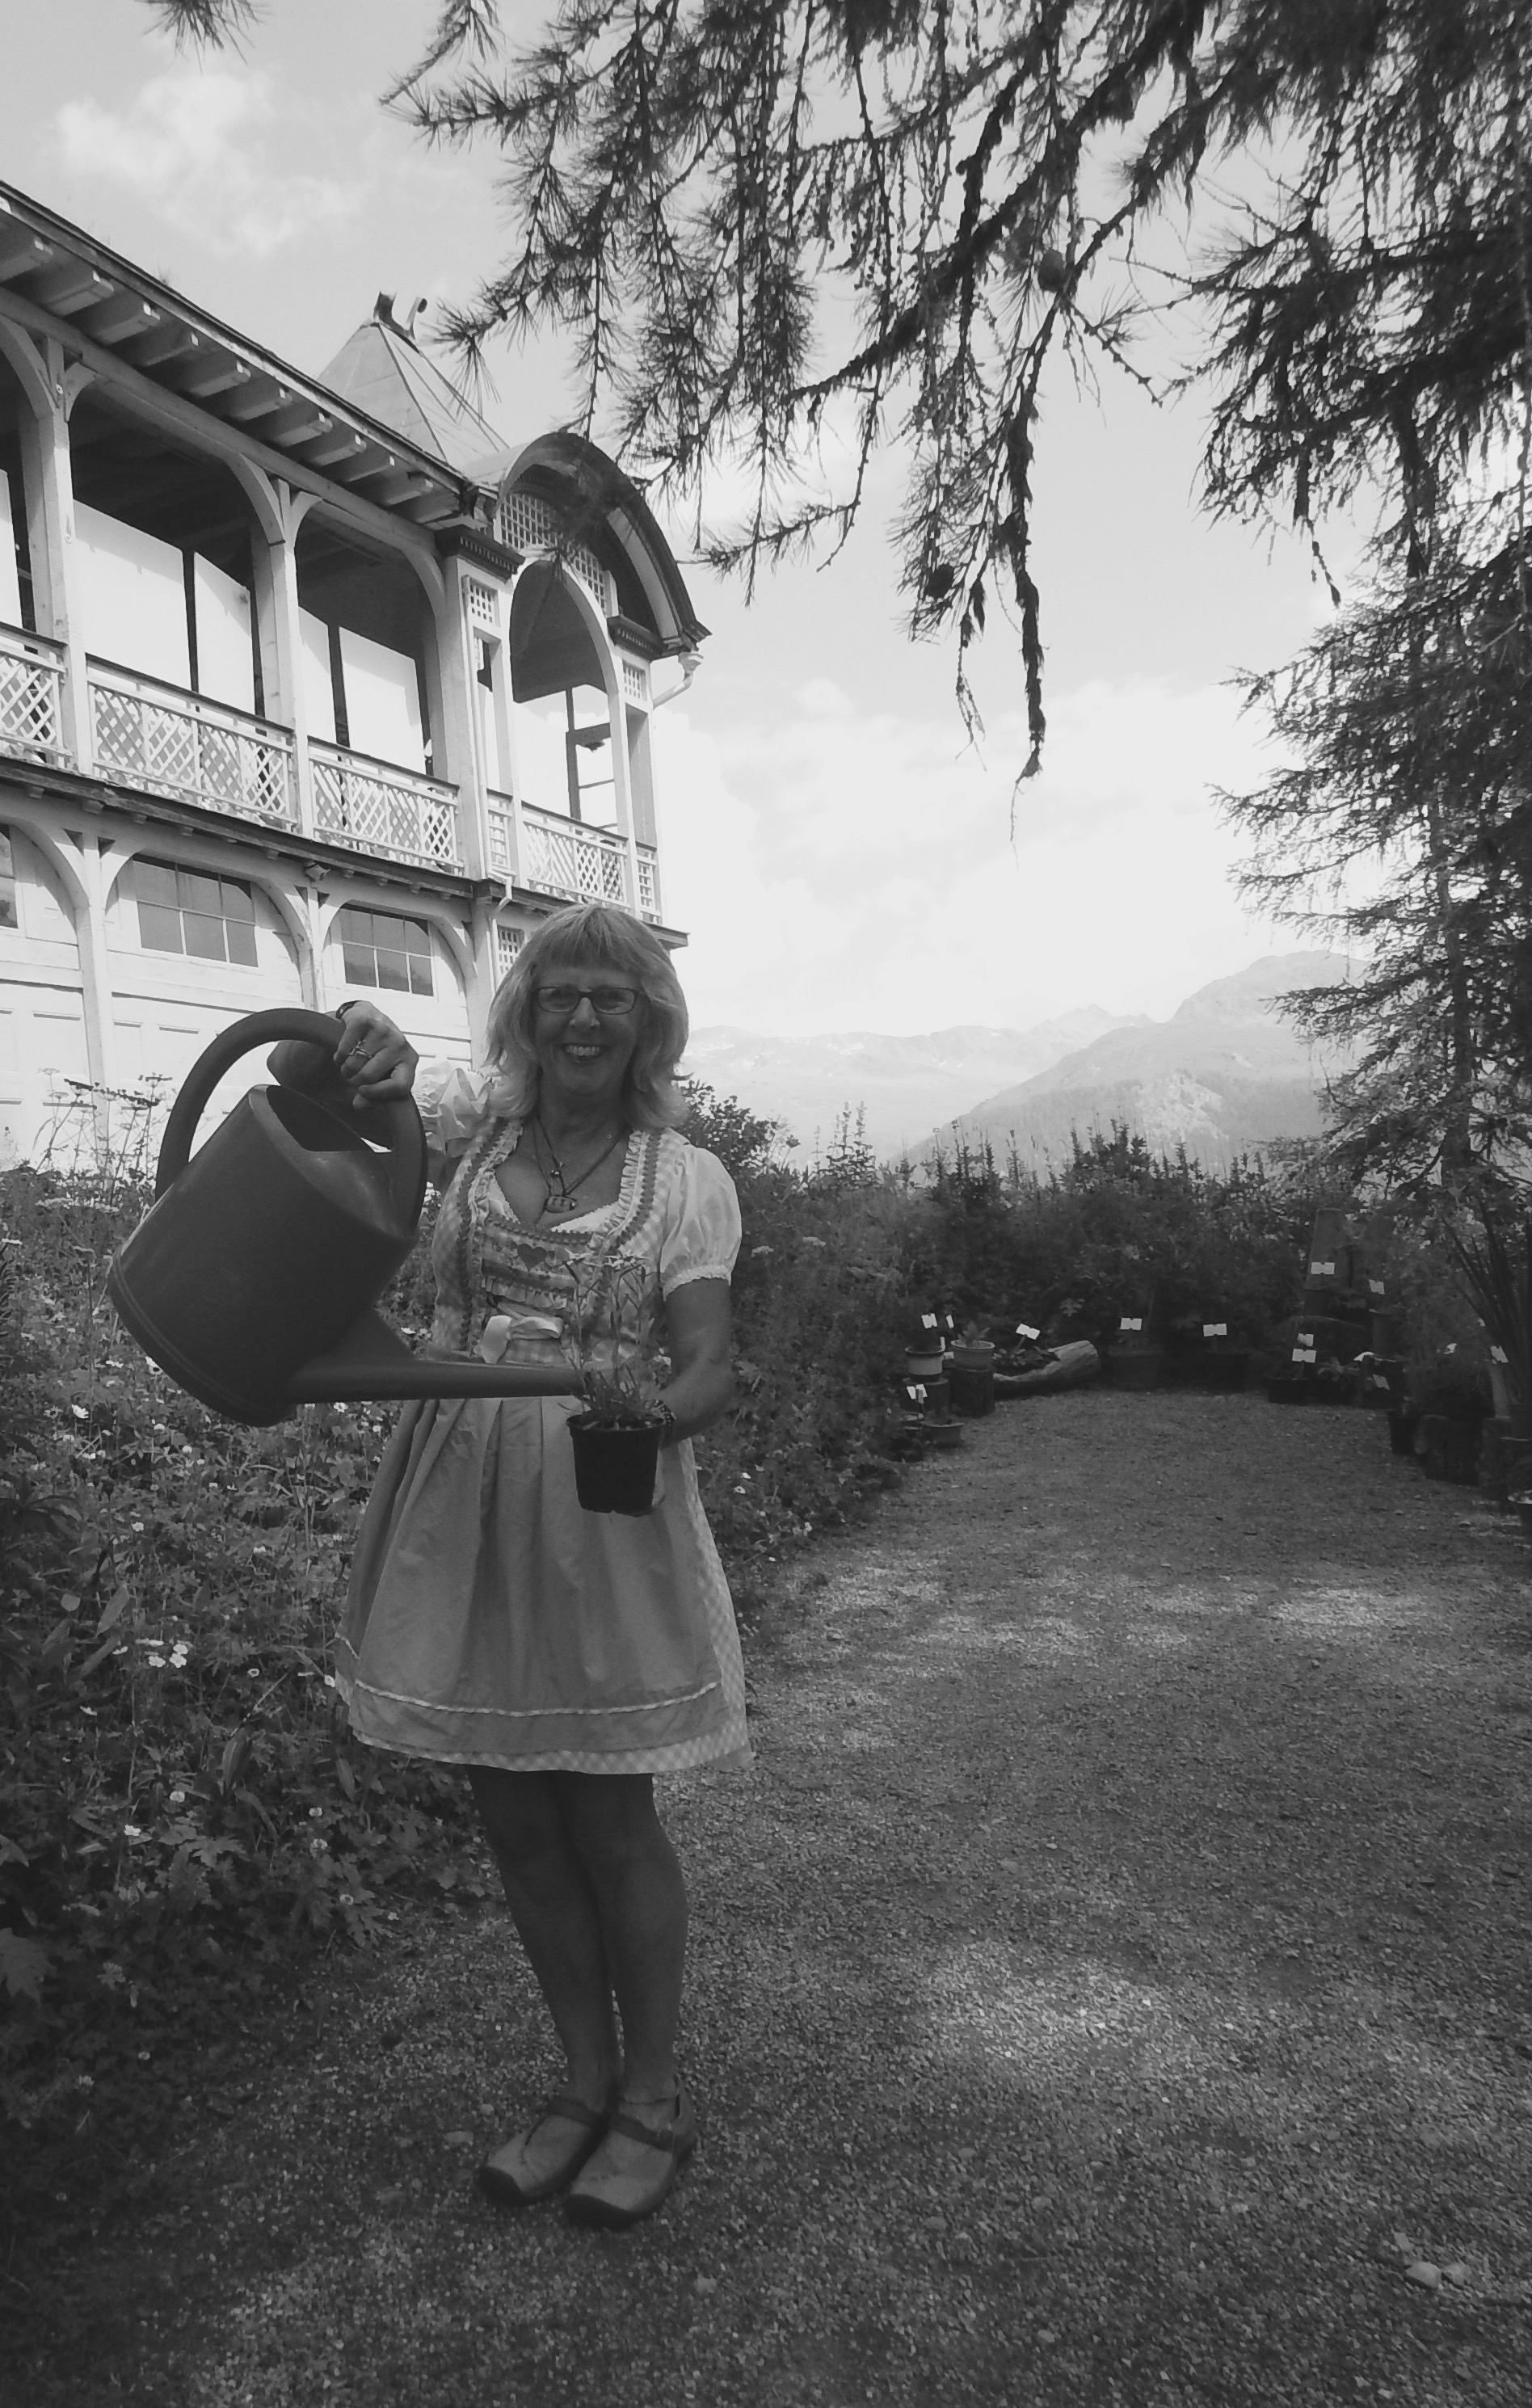 Me wearing a traditional Swiss outfit, working in the garden and holding an eidelweiss flower!